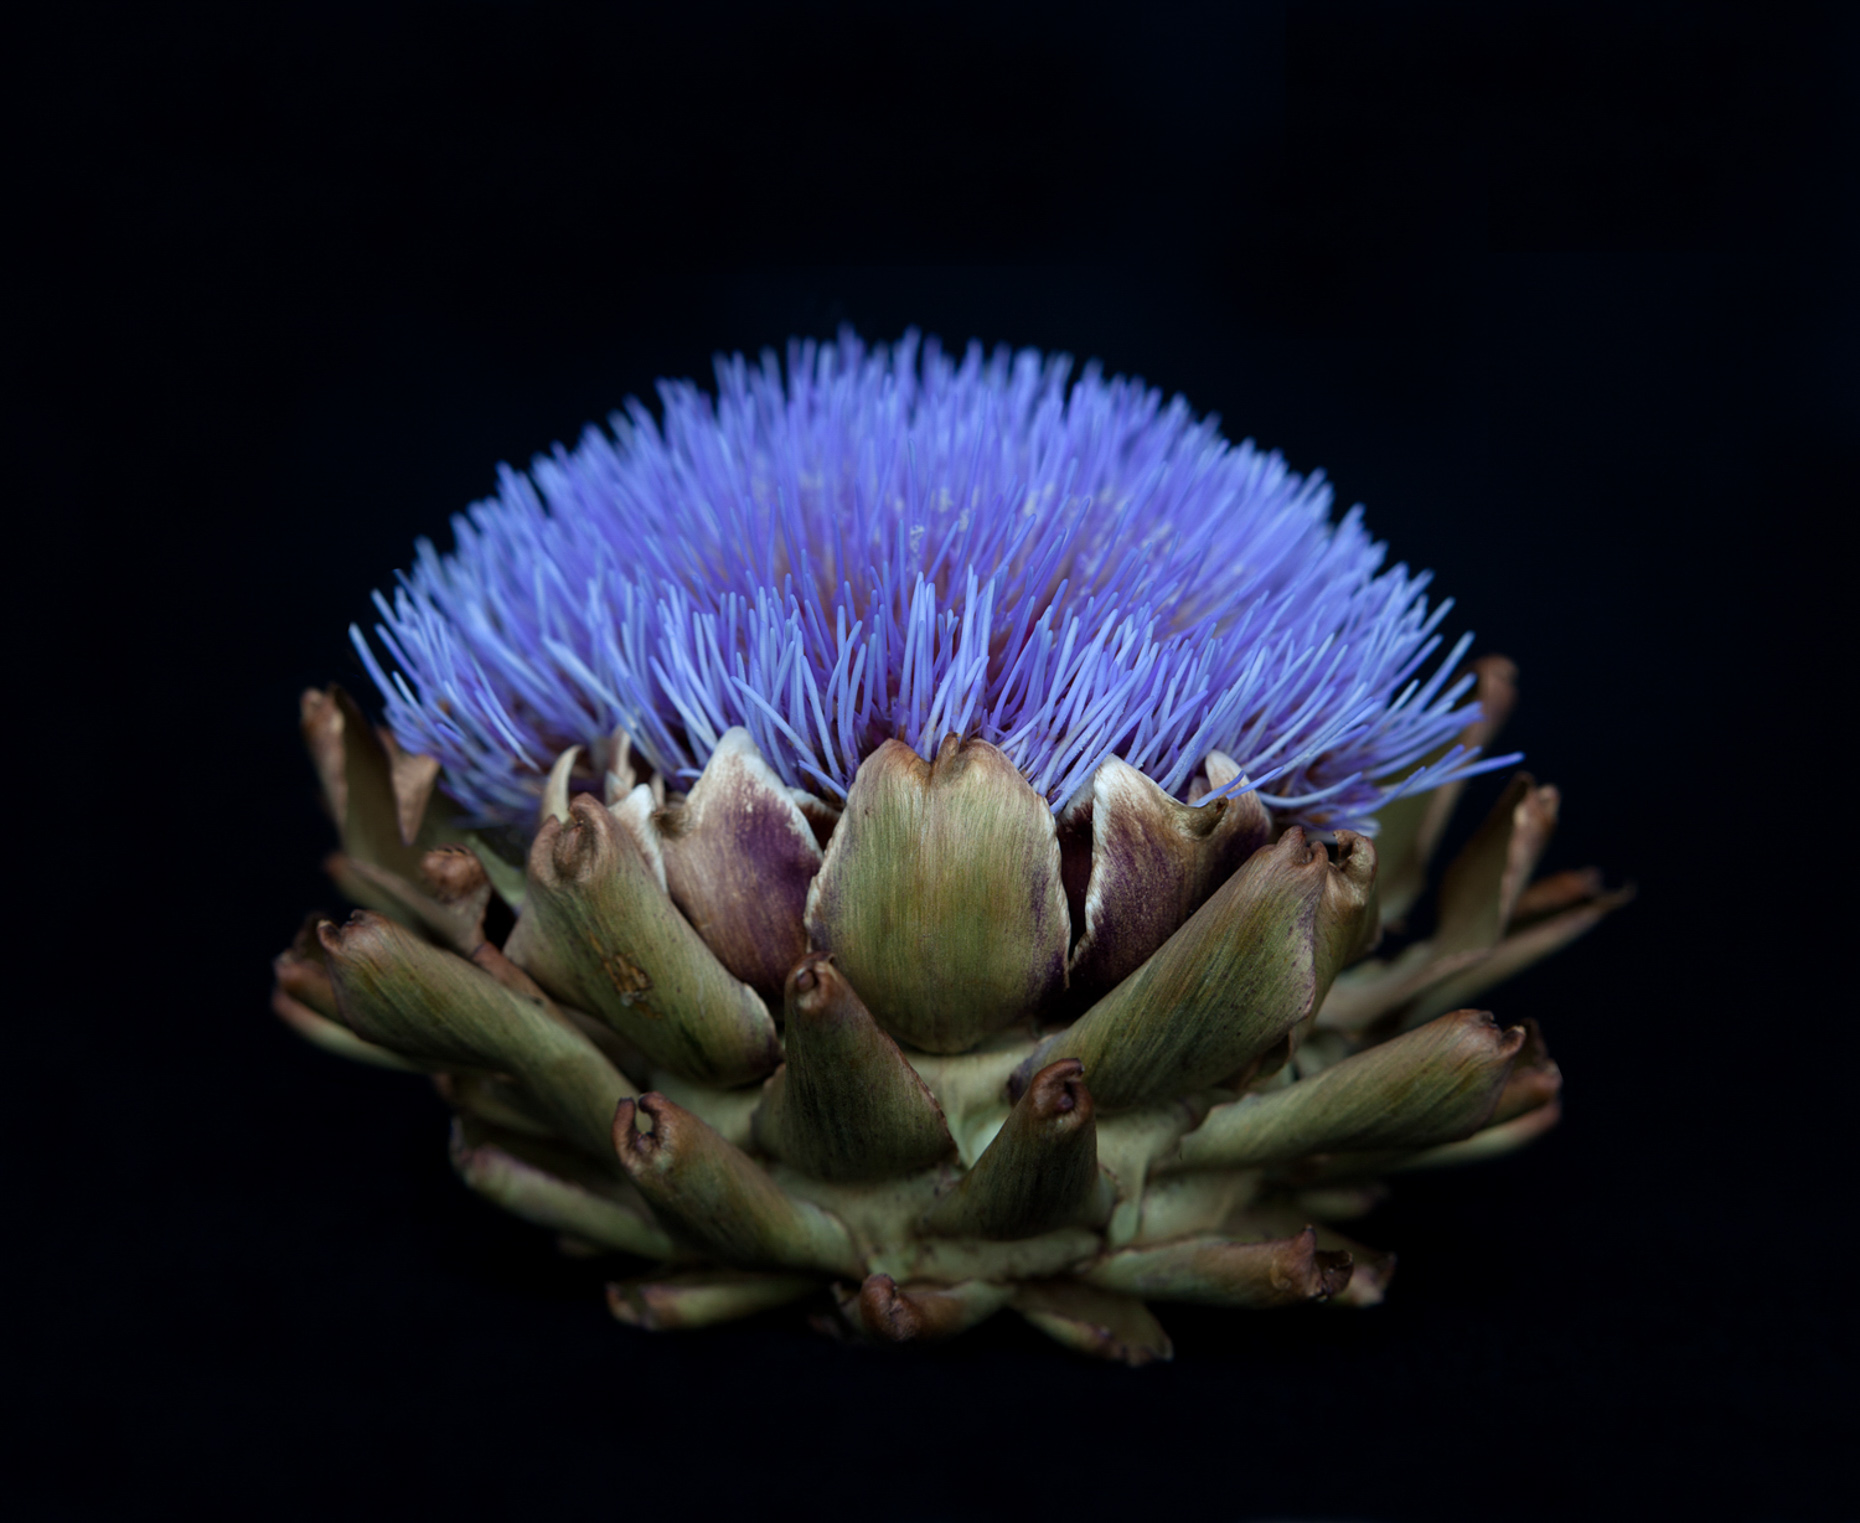 Axel Bernstorff, Collectable limited edition fine art photographic prints. Flowering lobe artichoke (Cynara cardunculus var. scolymus)